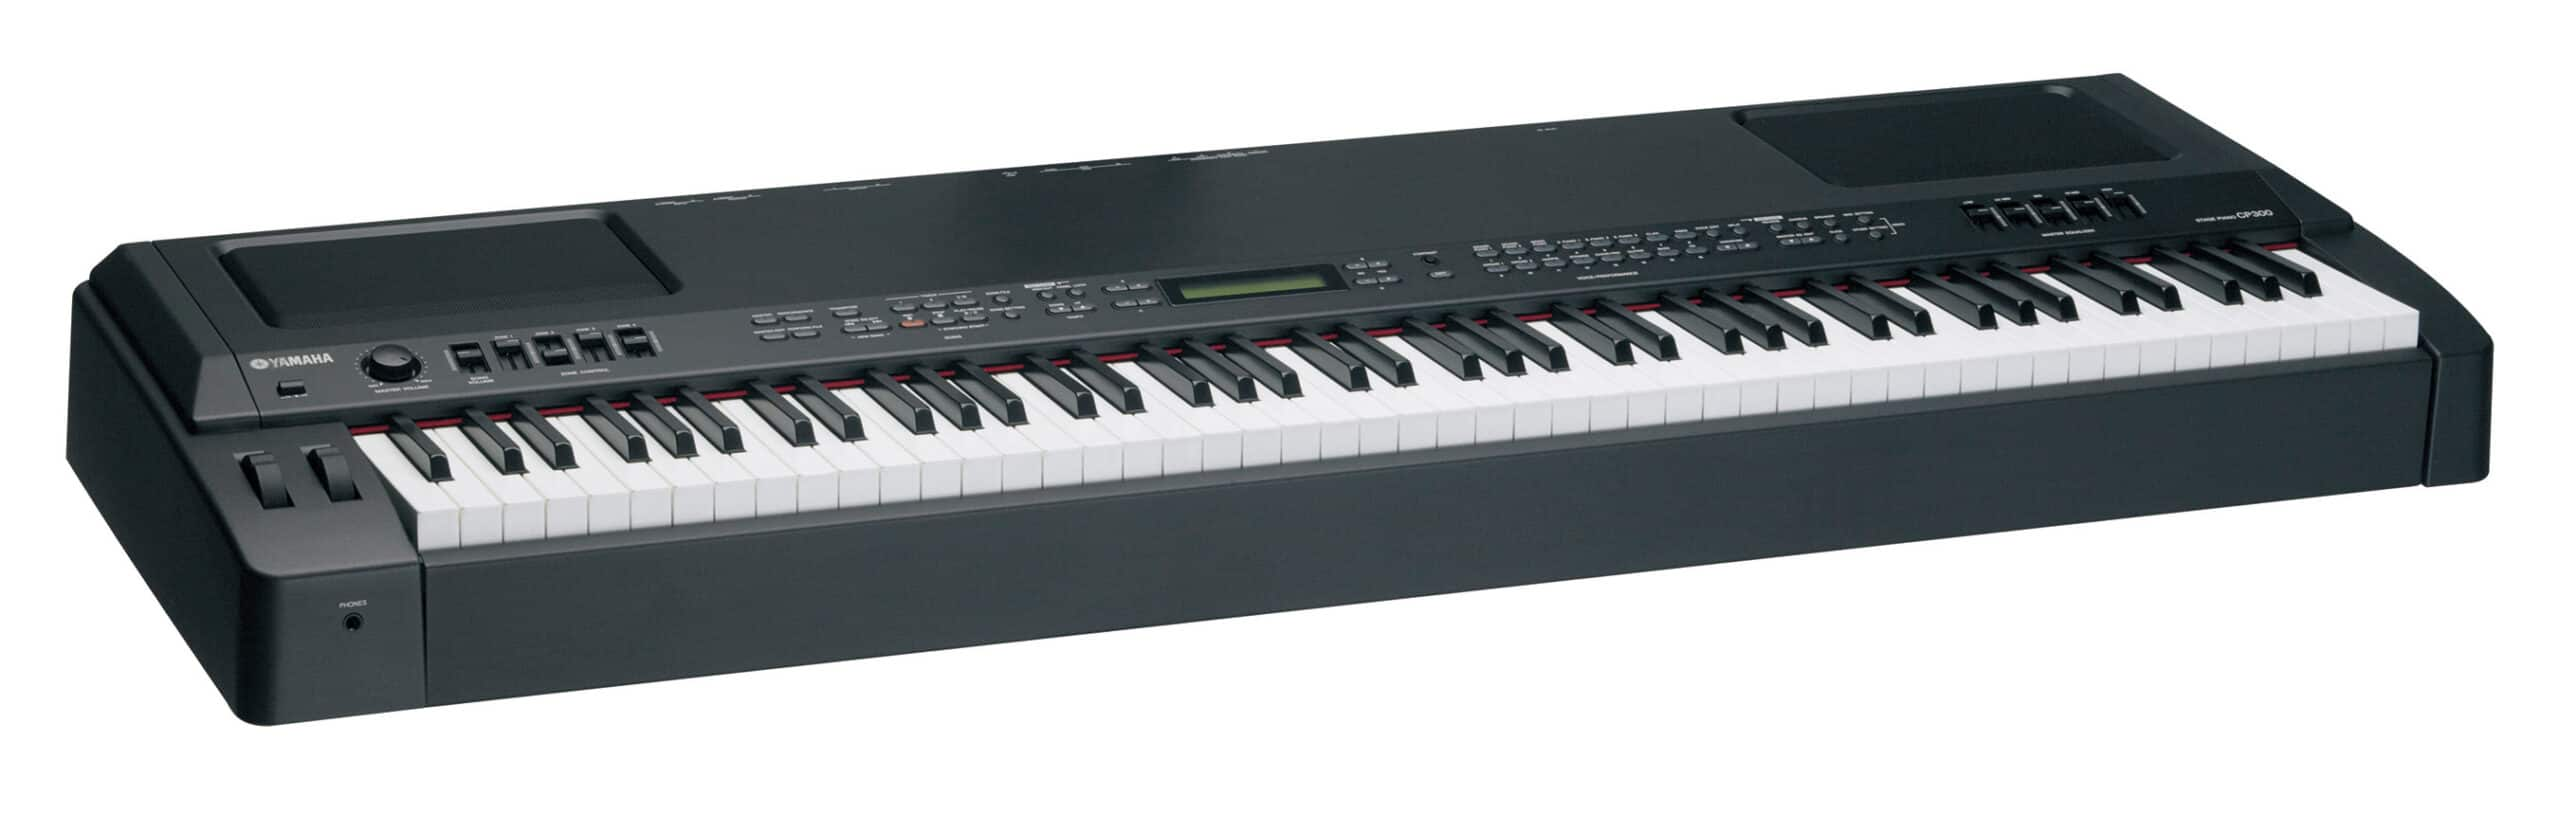 Stagepiano_vs_Workstation_CP300